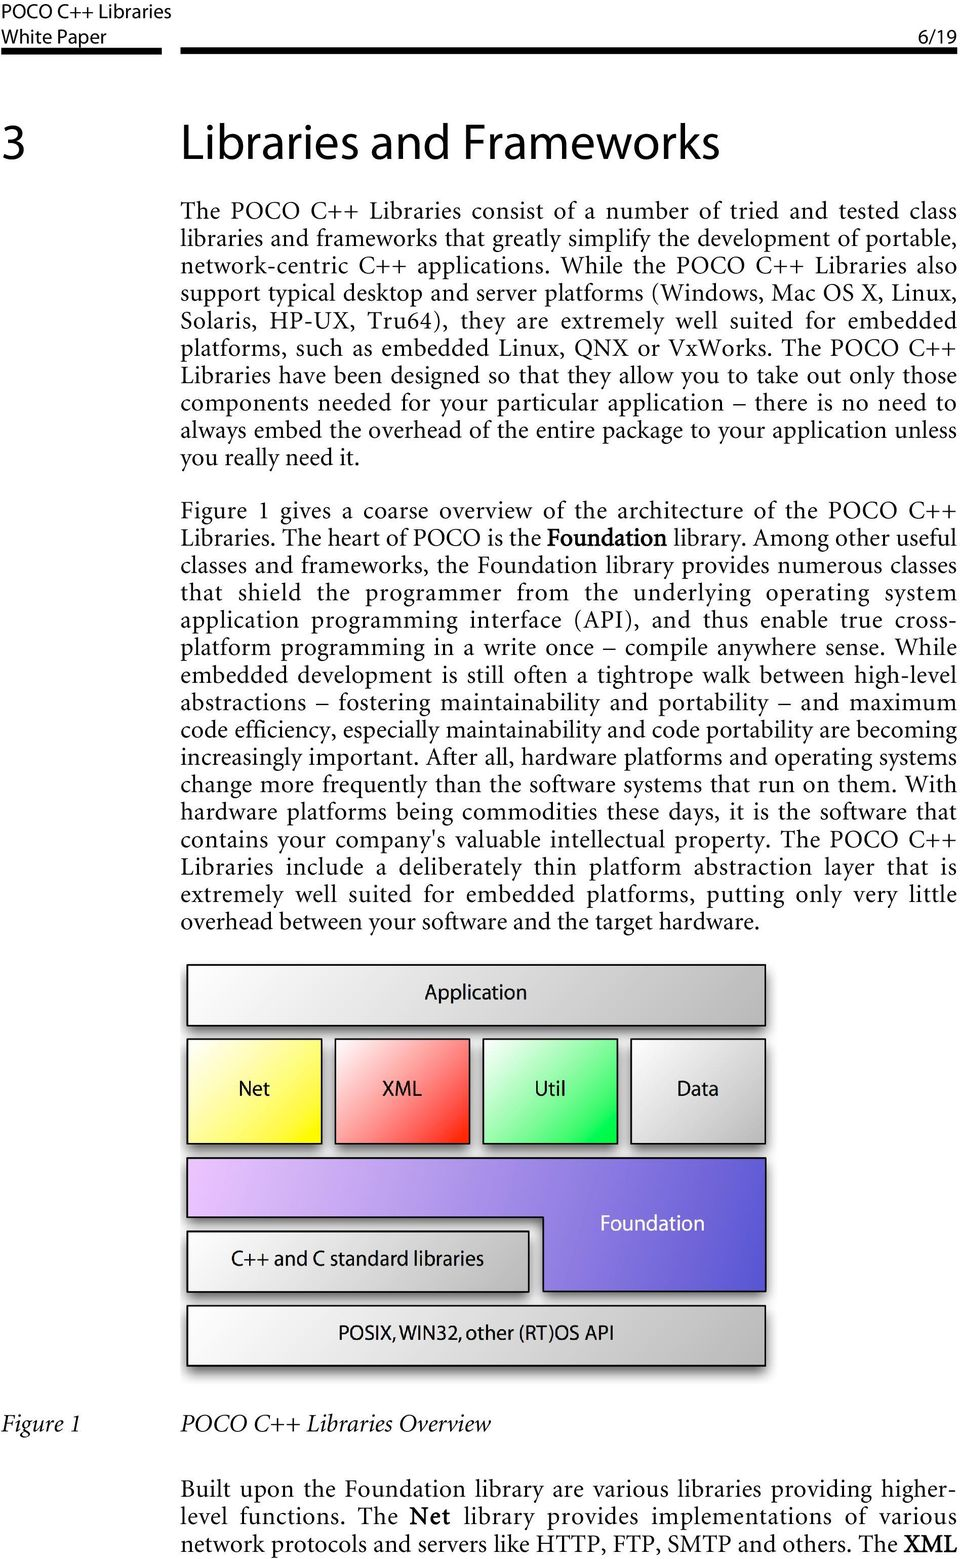 The POCO C++ Libraries for Device Software Development - PDF